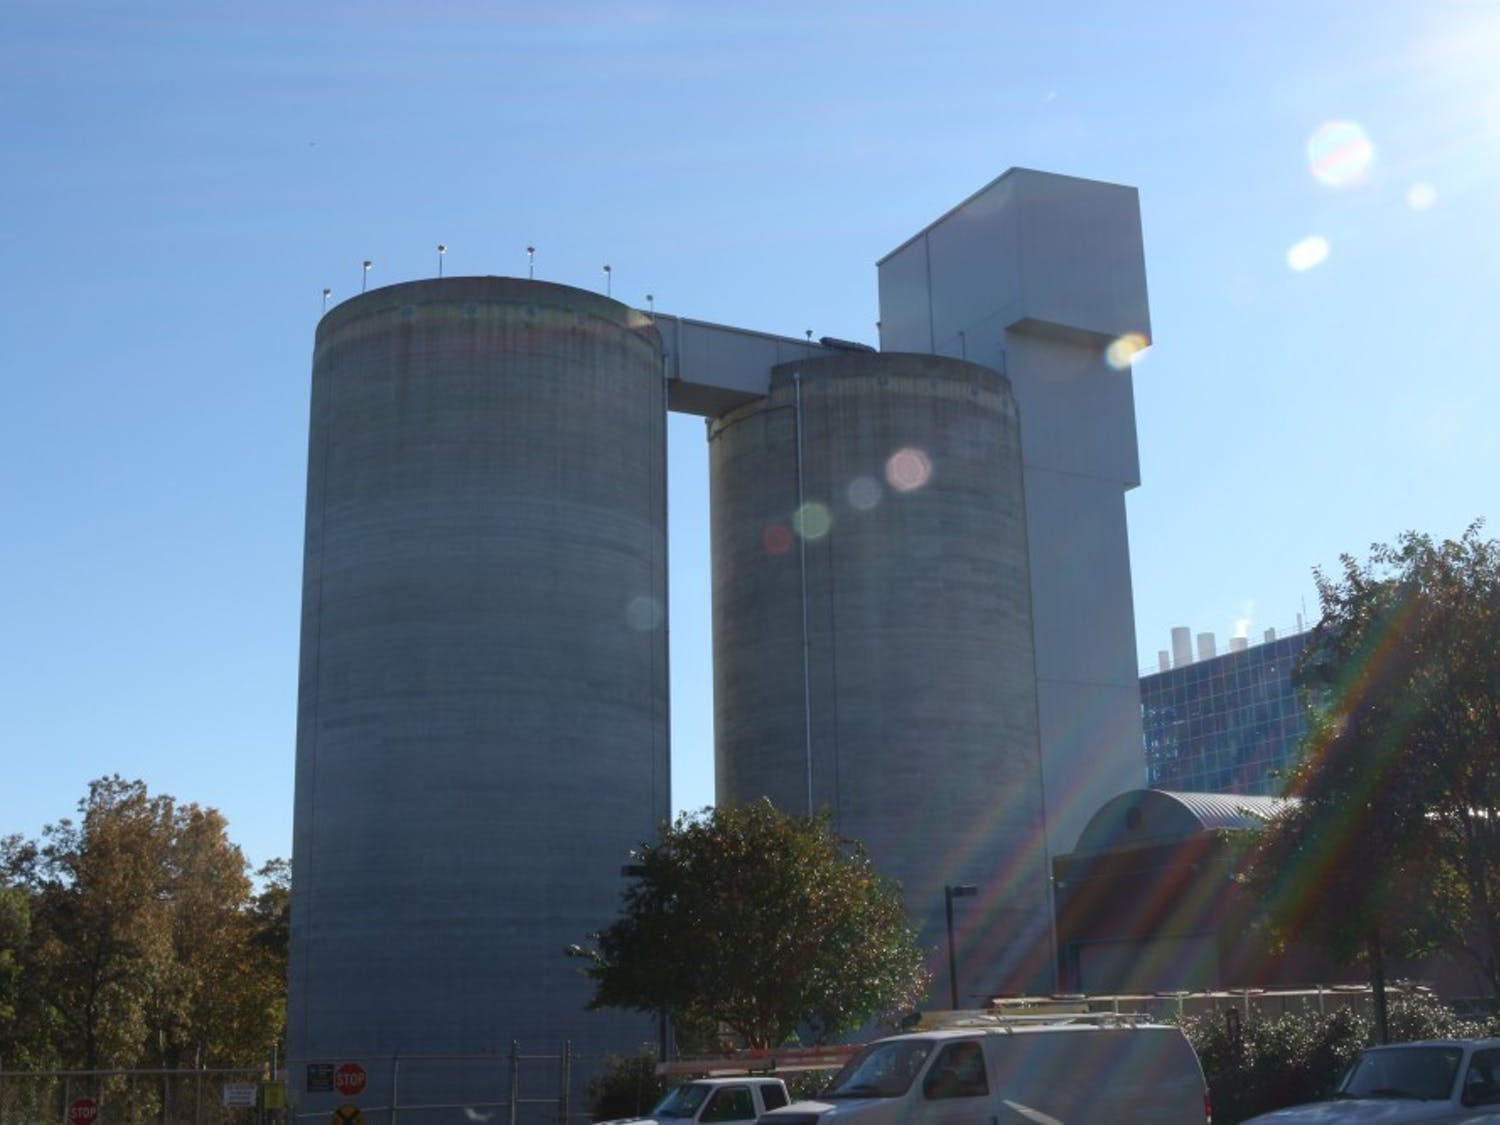 The UNC-Chapel Hill Cogeneration Facility is a coal-fired power station located west of campus on McCauley St. This photo was taken Saturday, Nov. 10, 2018.